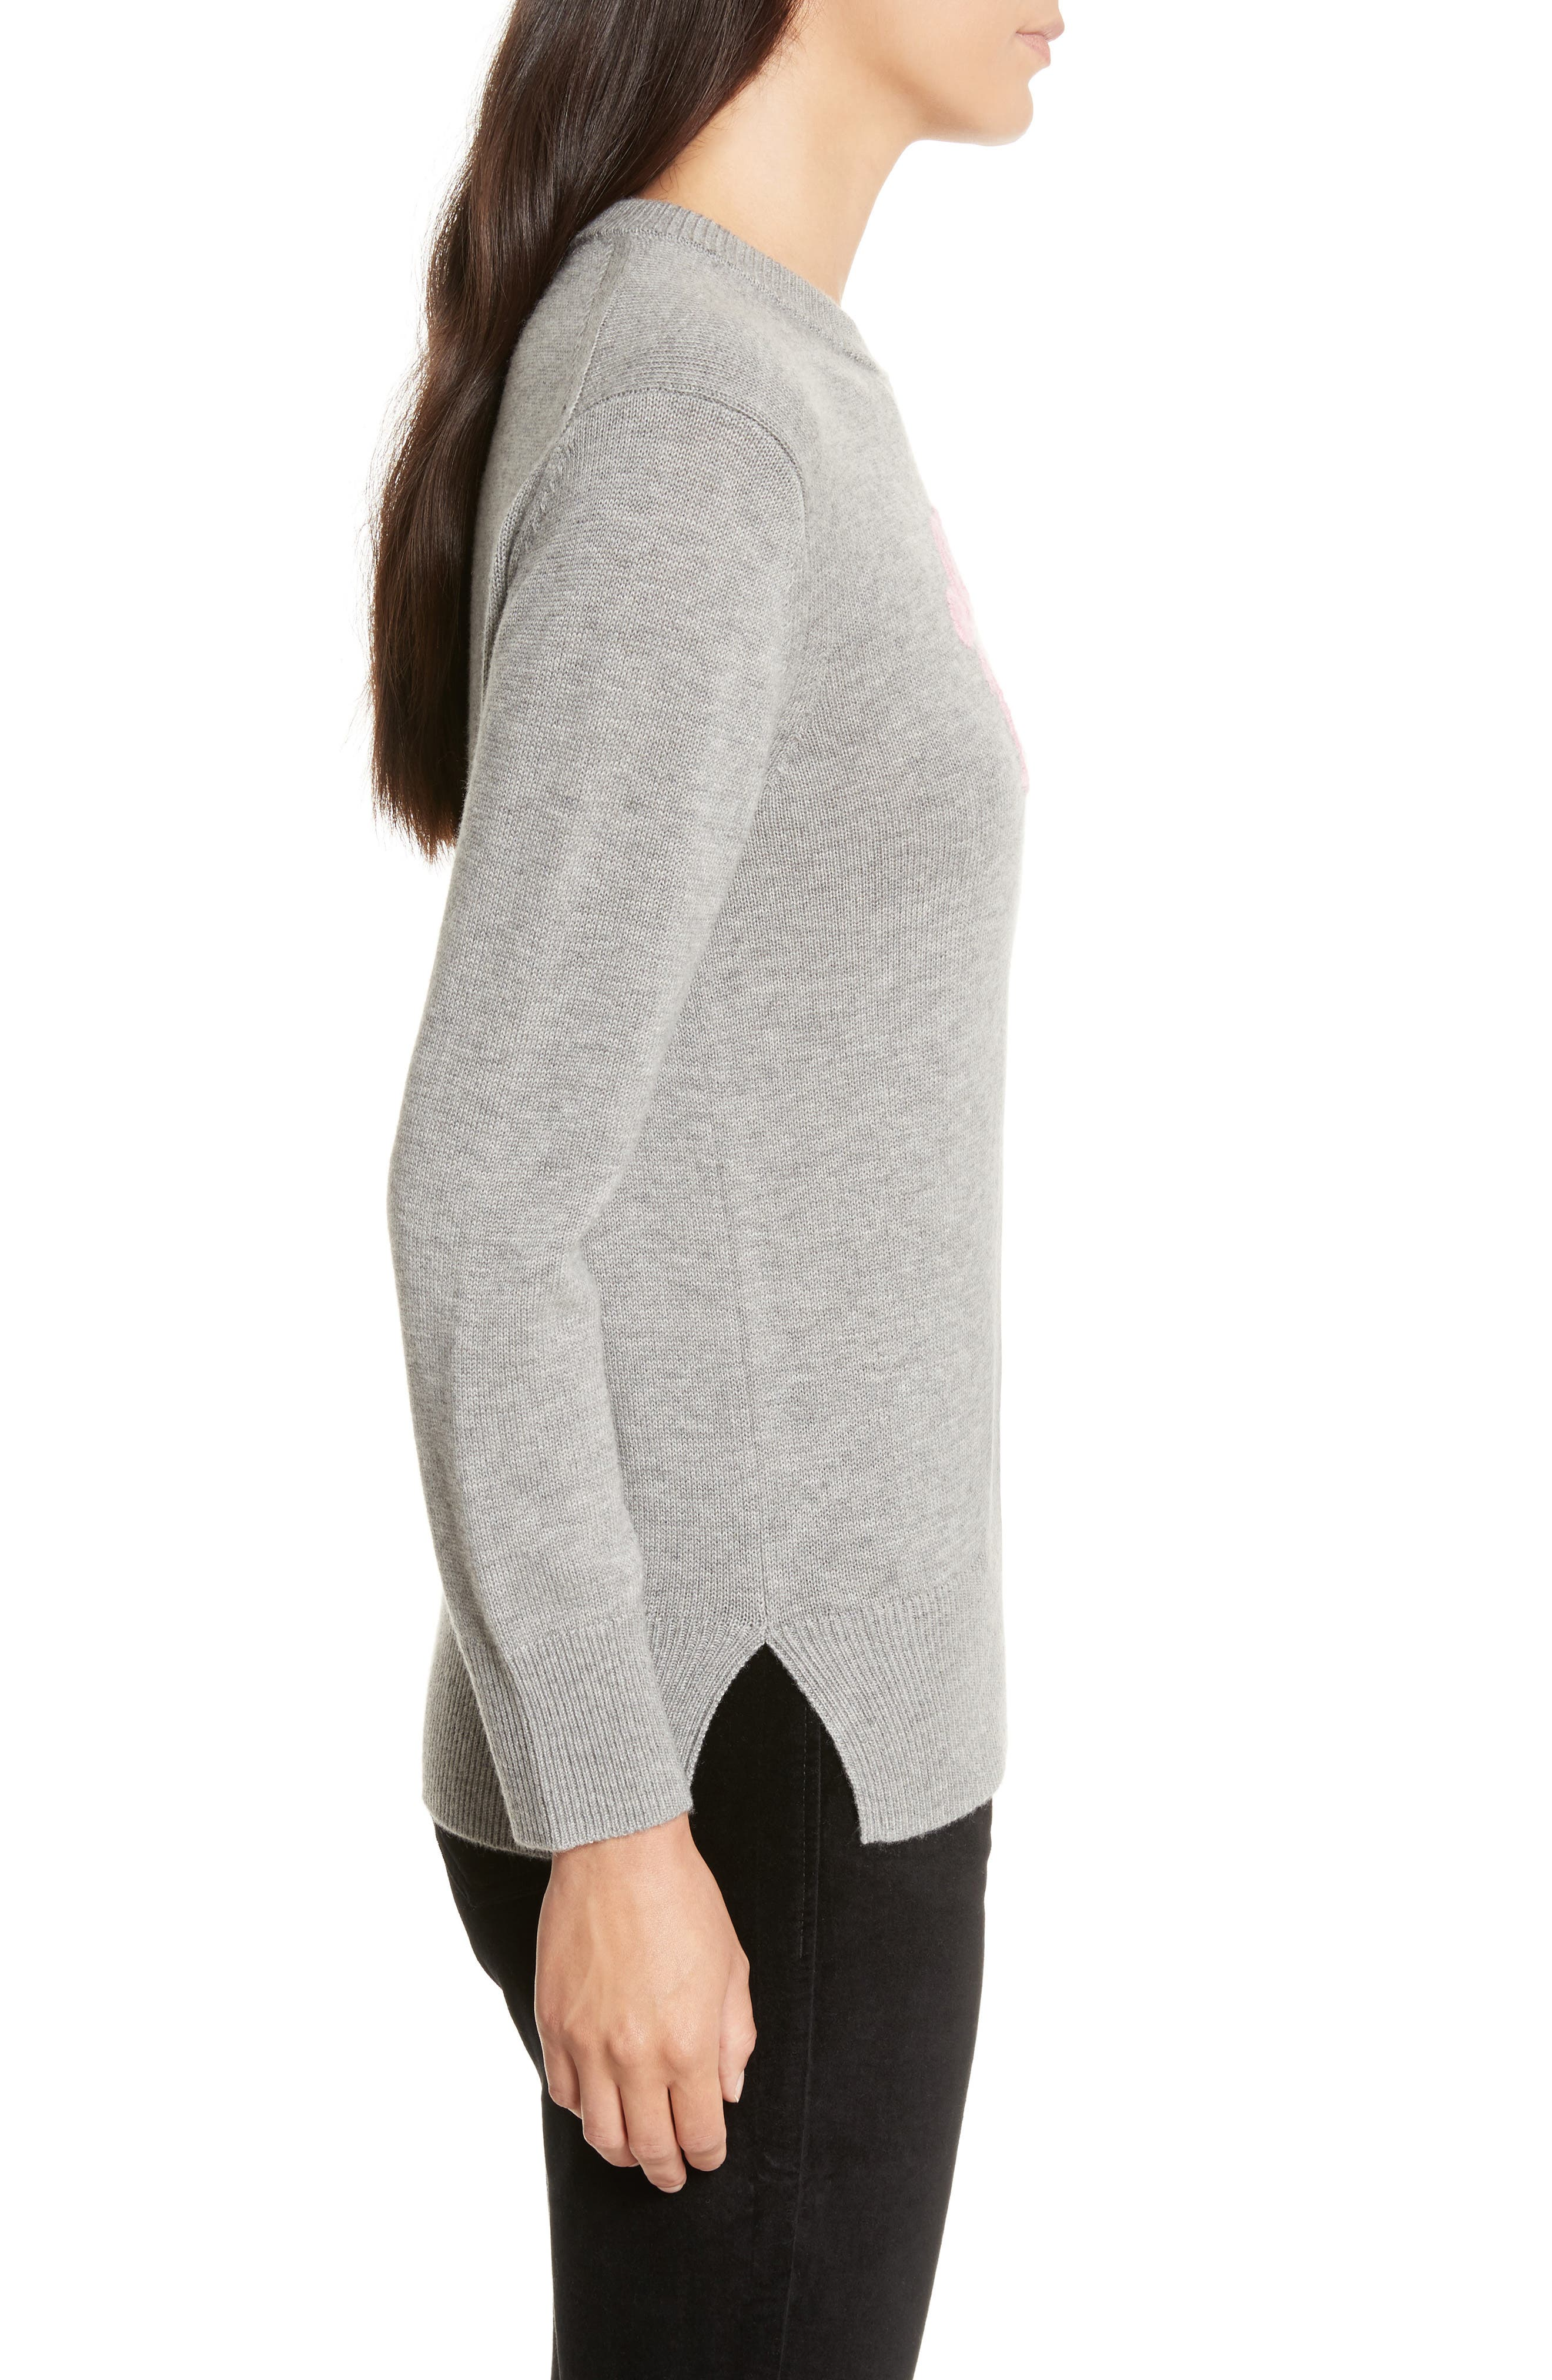 KATE SPADE NEW YORK,                             all dolled up sweater,                             Alternate thumbnail 3, color,                             082